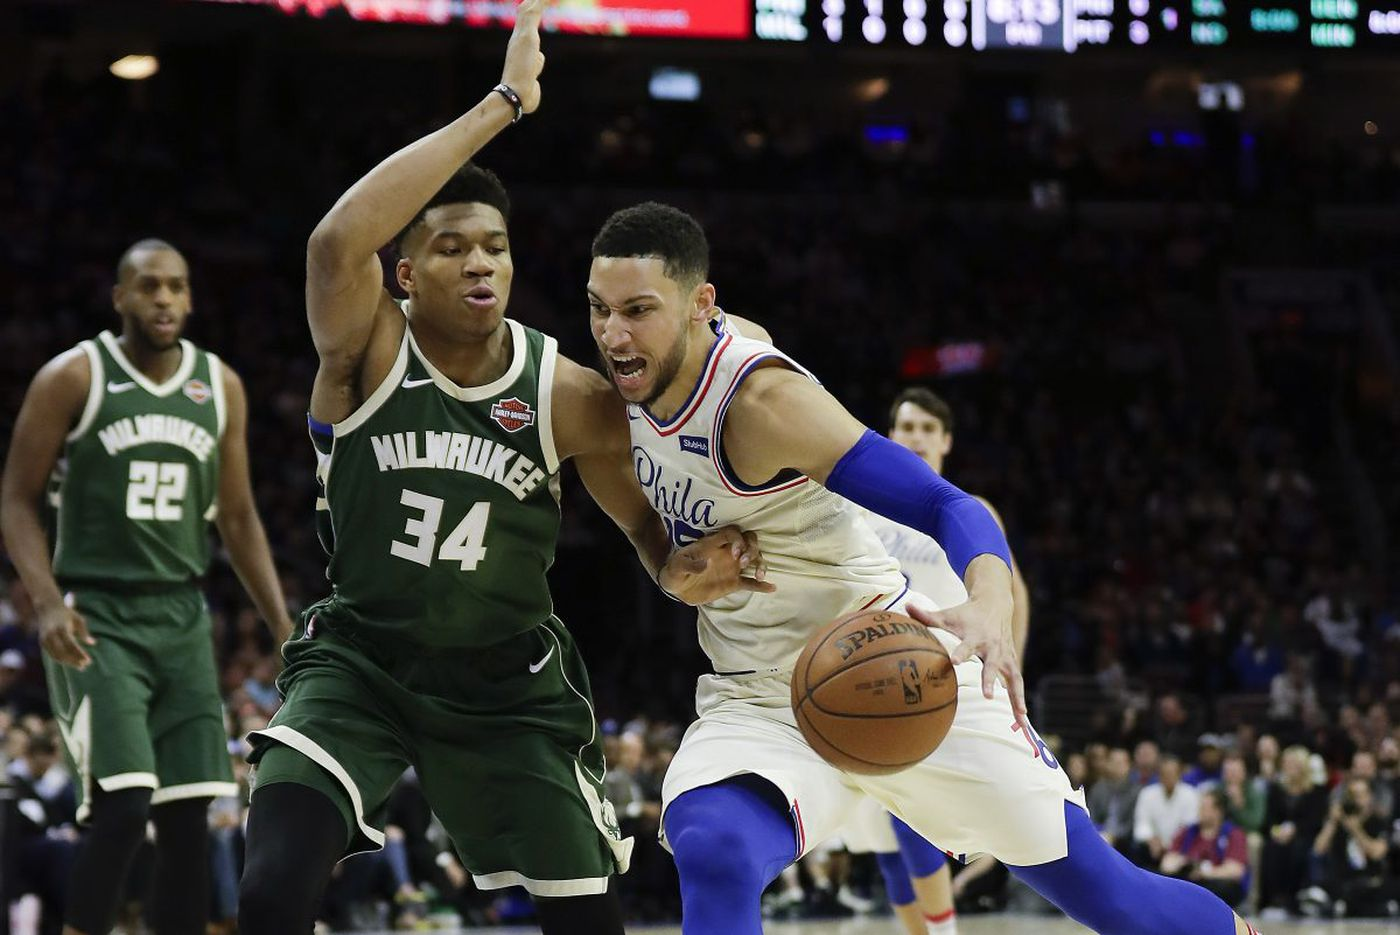 Sixers open up NBA playoffs on Saturday at 8 p.m. on ESPN